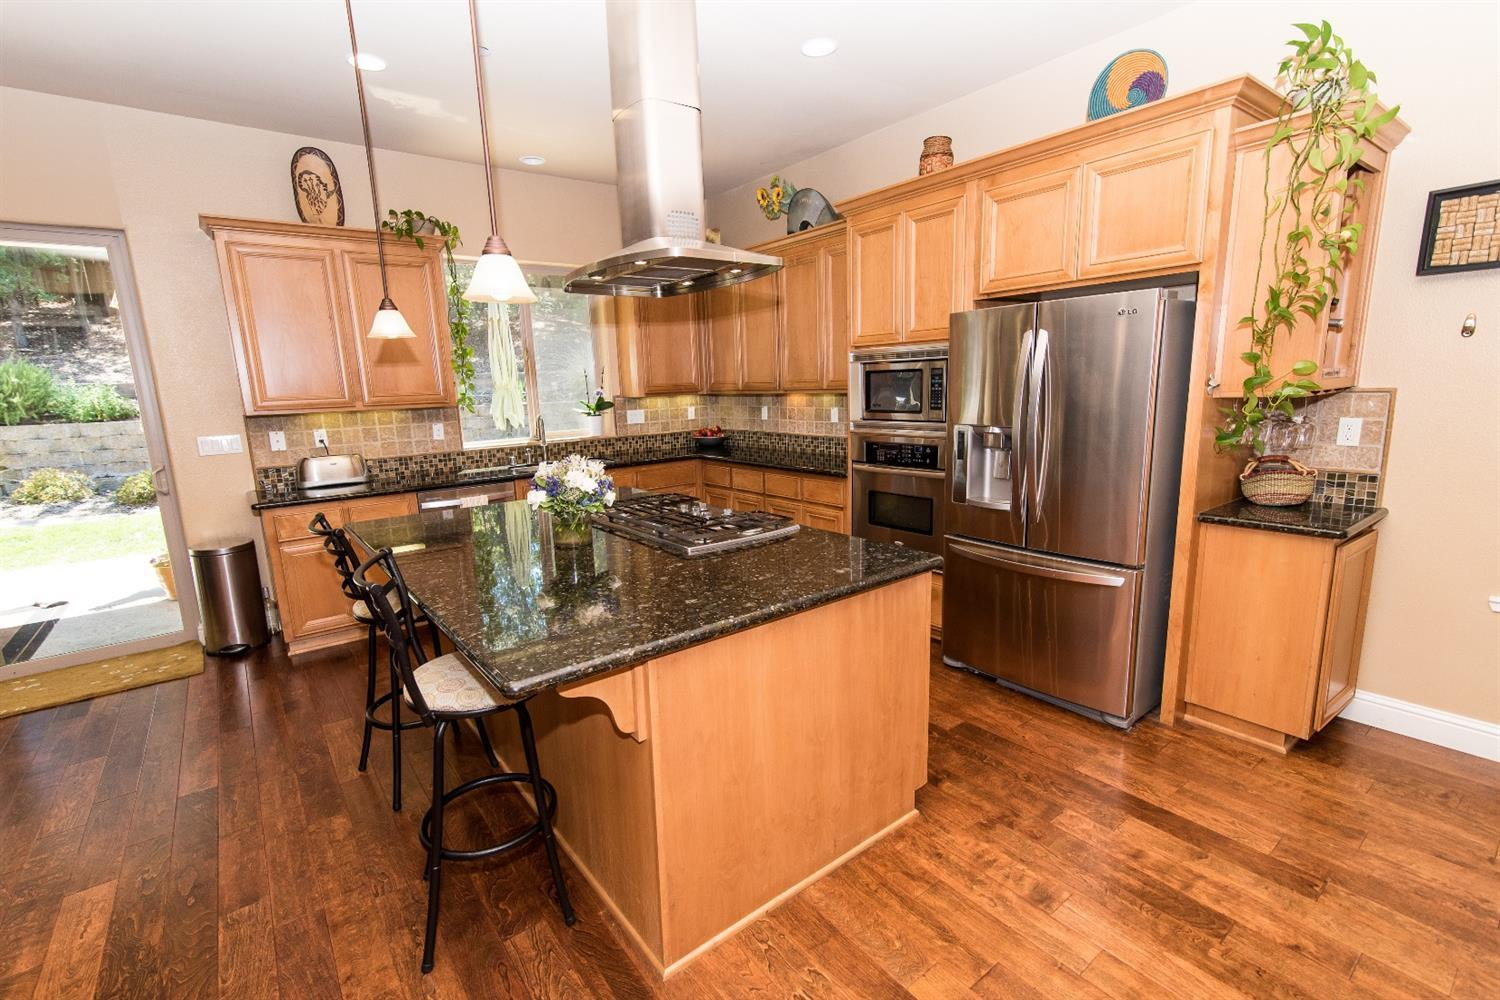 Local Real Estate: Homes for Sale — Maidu, CA — Coldwell Banker